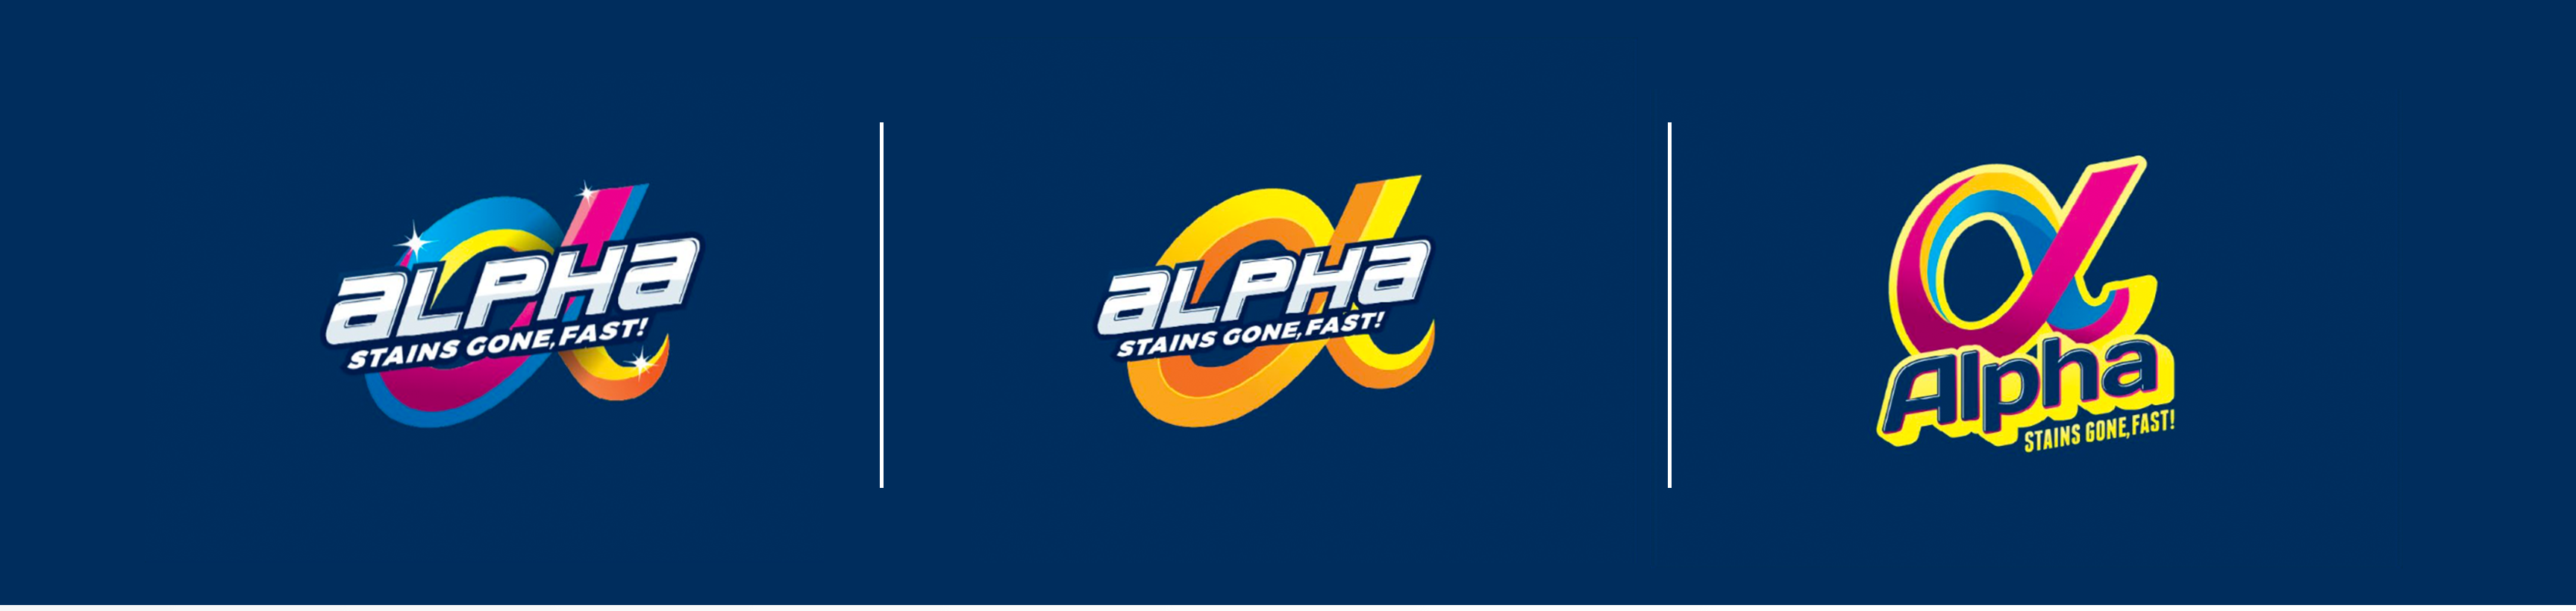 alpha-washing-powder-logo-concepts.png